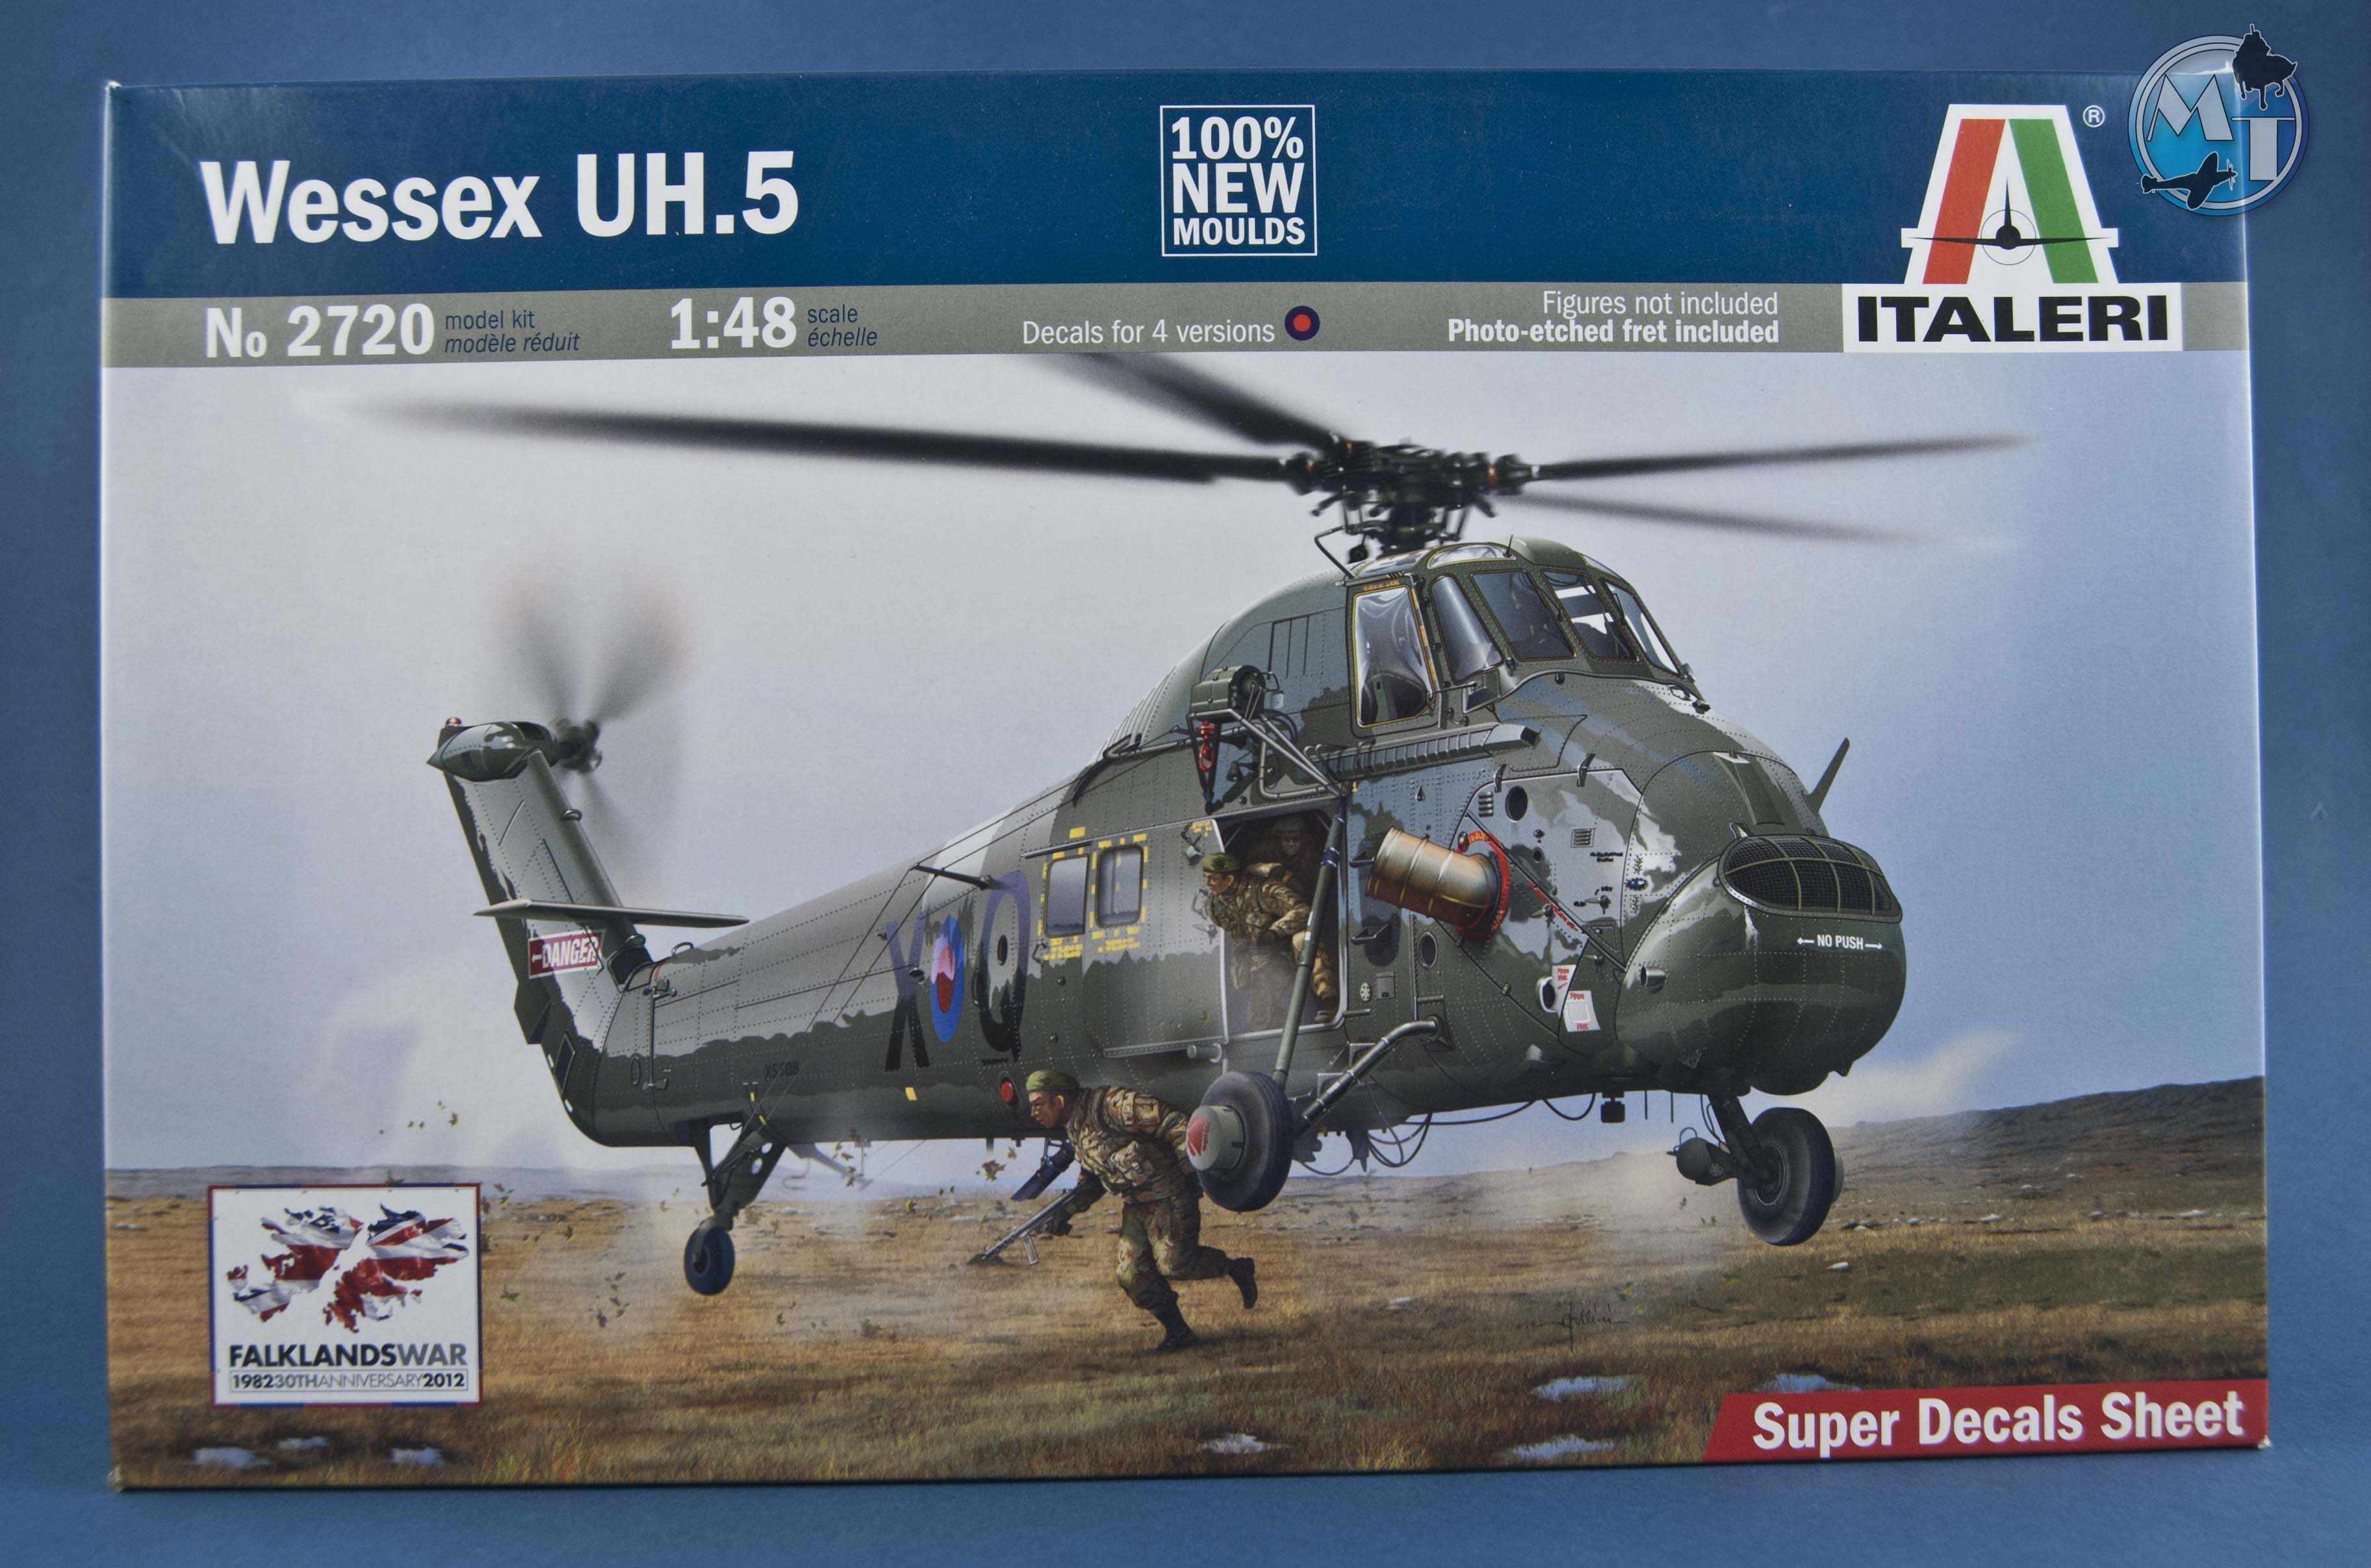 Elicottero Wessex : Kit review wessex uh italeri in scala modeling time